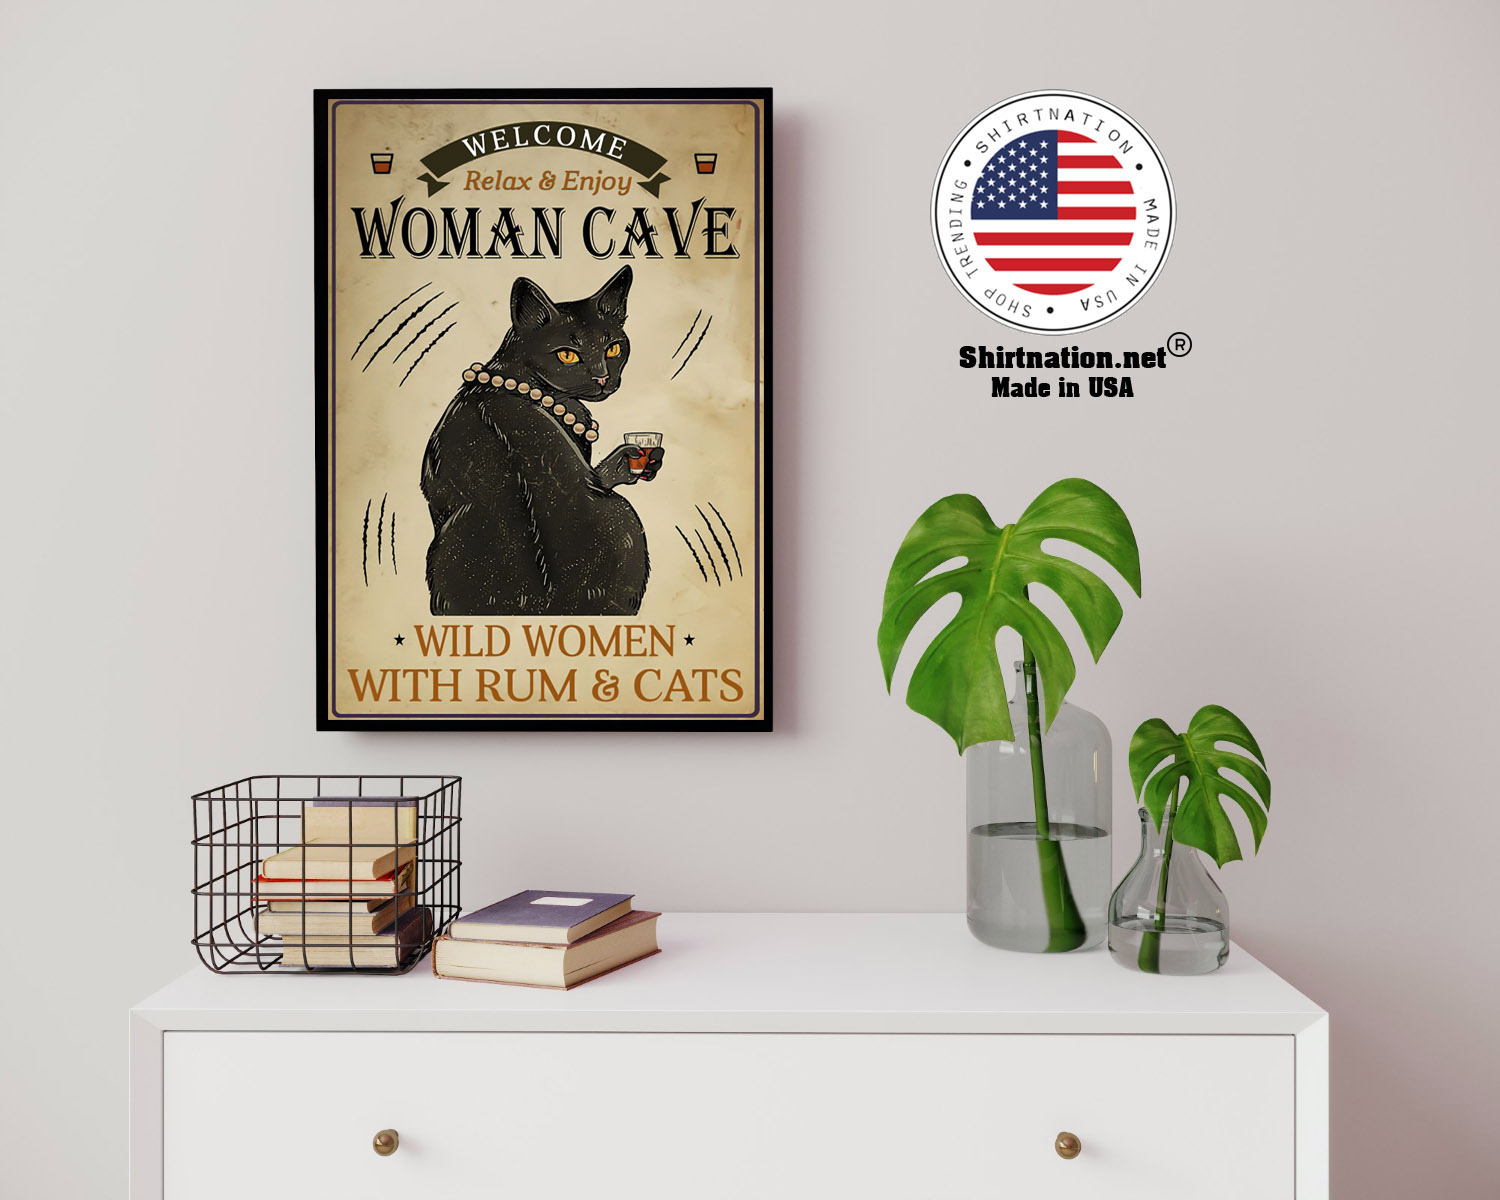 Welcome relax enjoy woman cave will women with rum and cats poster 14